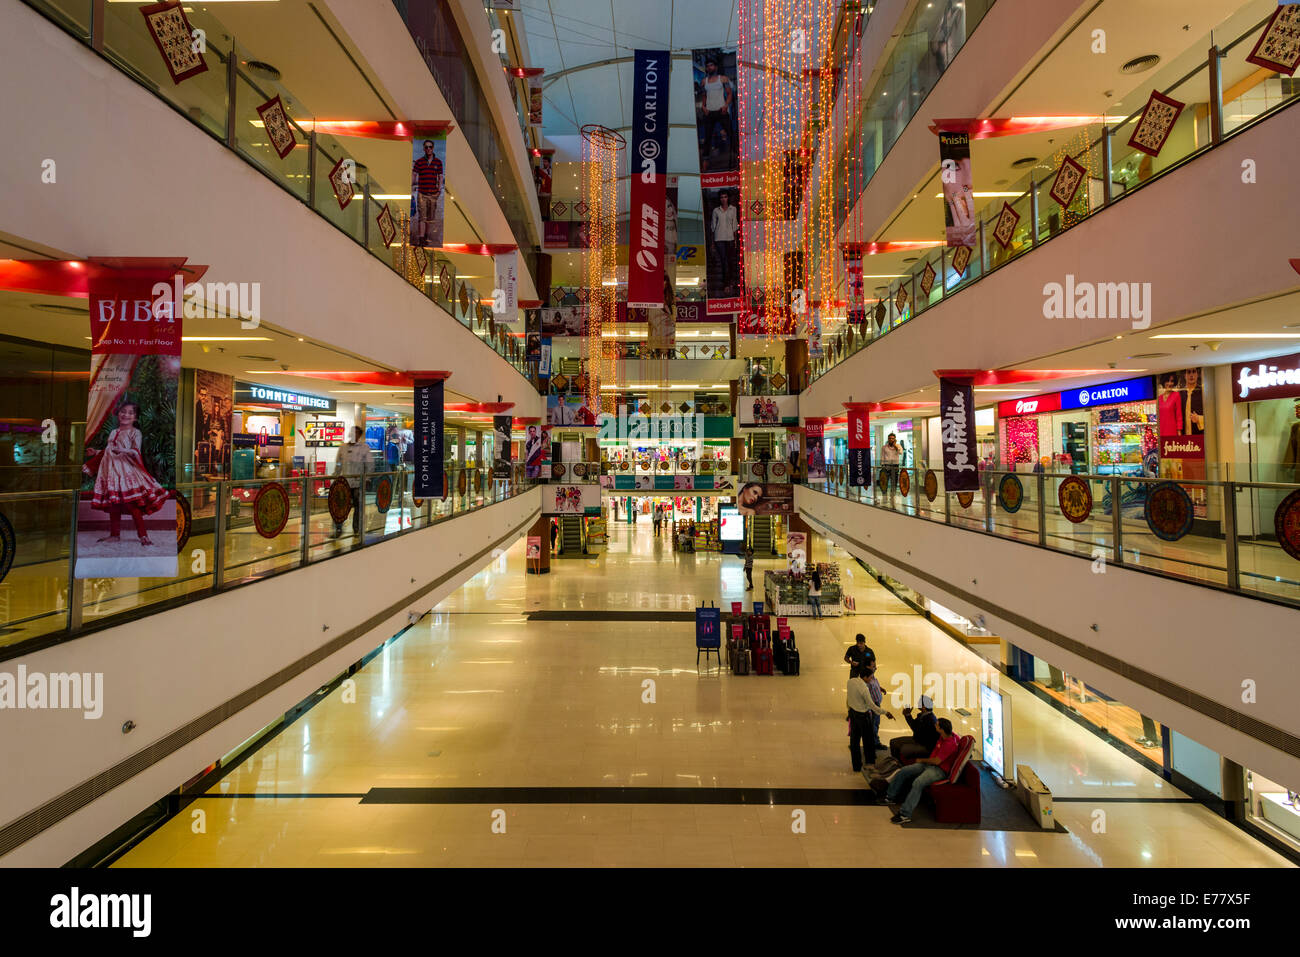 Shopping mall Gulmohar Park, Ahmedabad, Gujarat, India - Stock Image